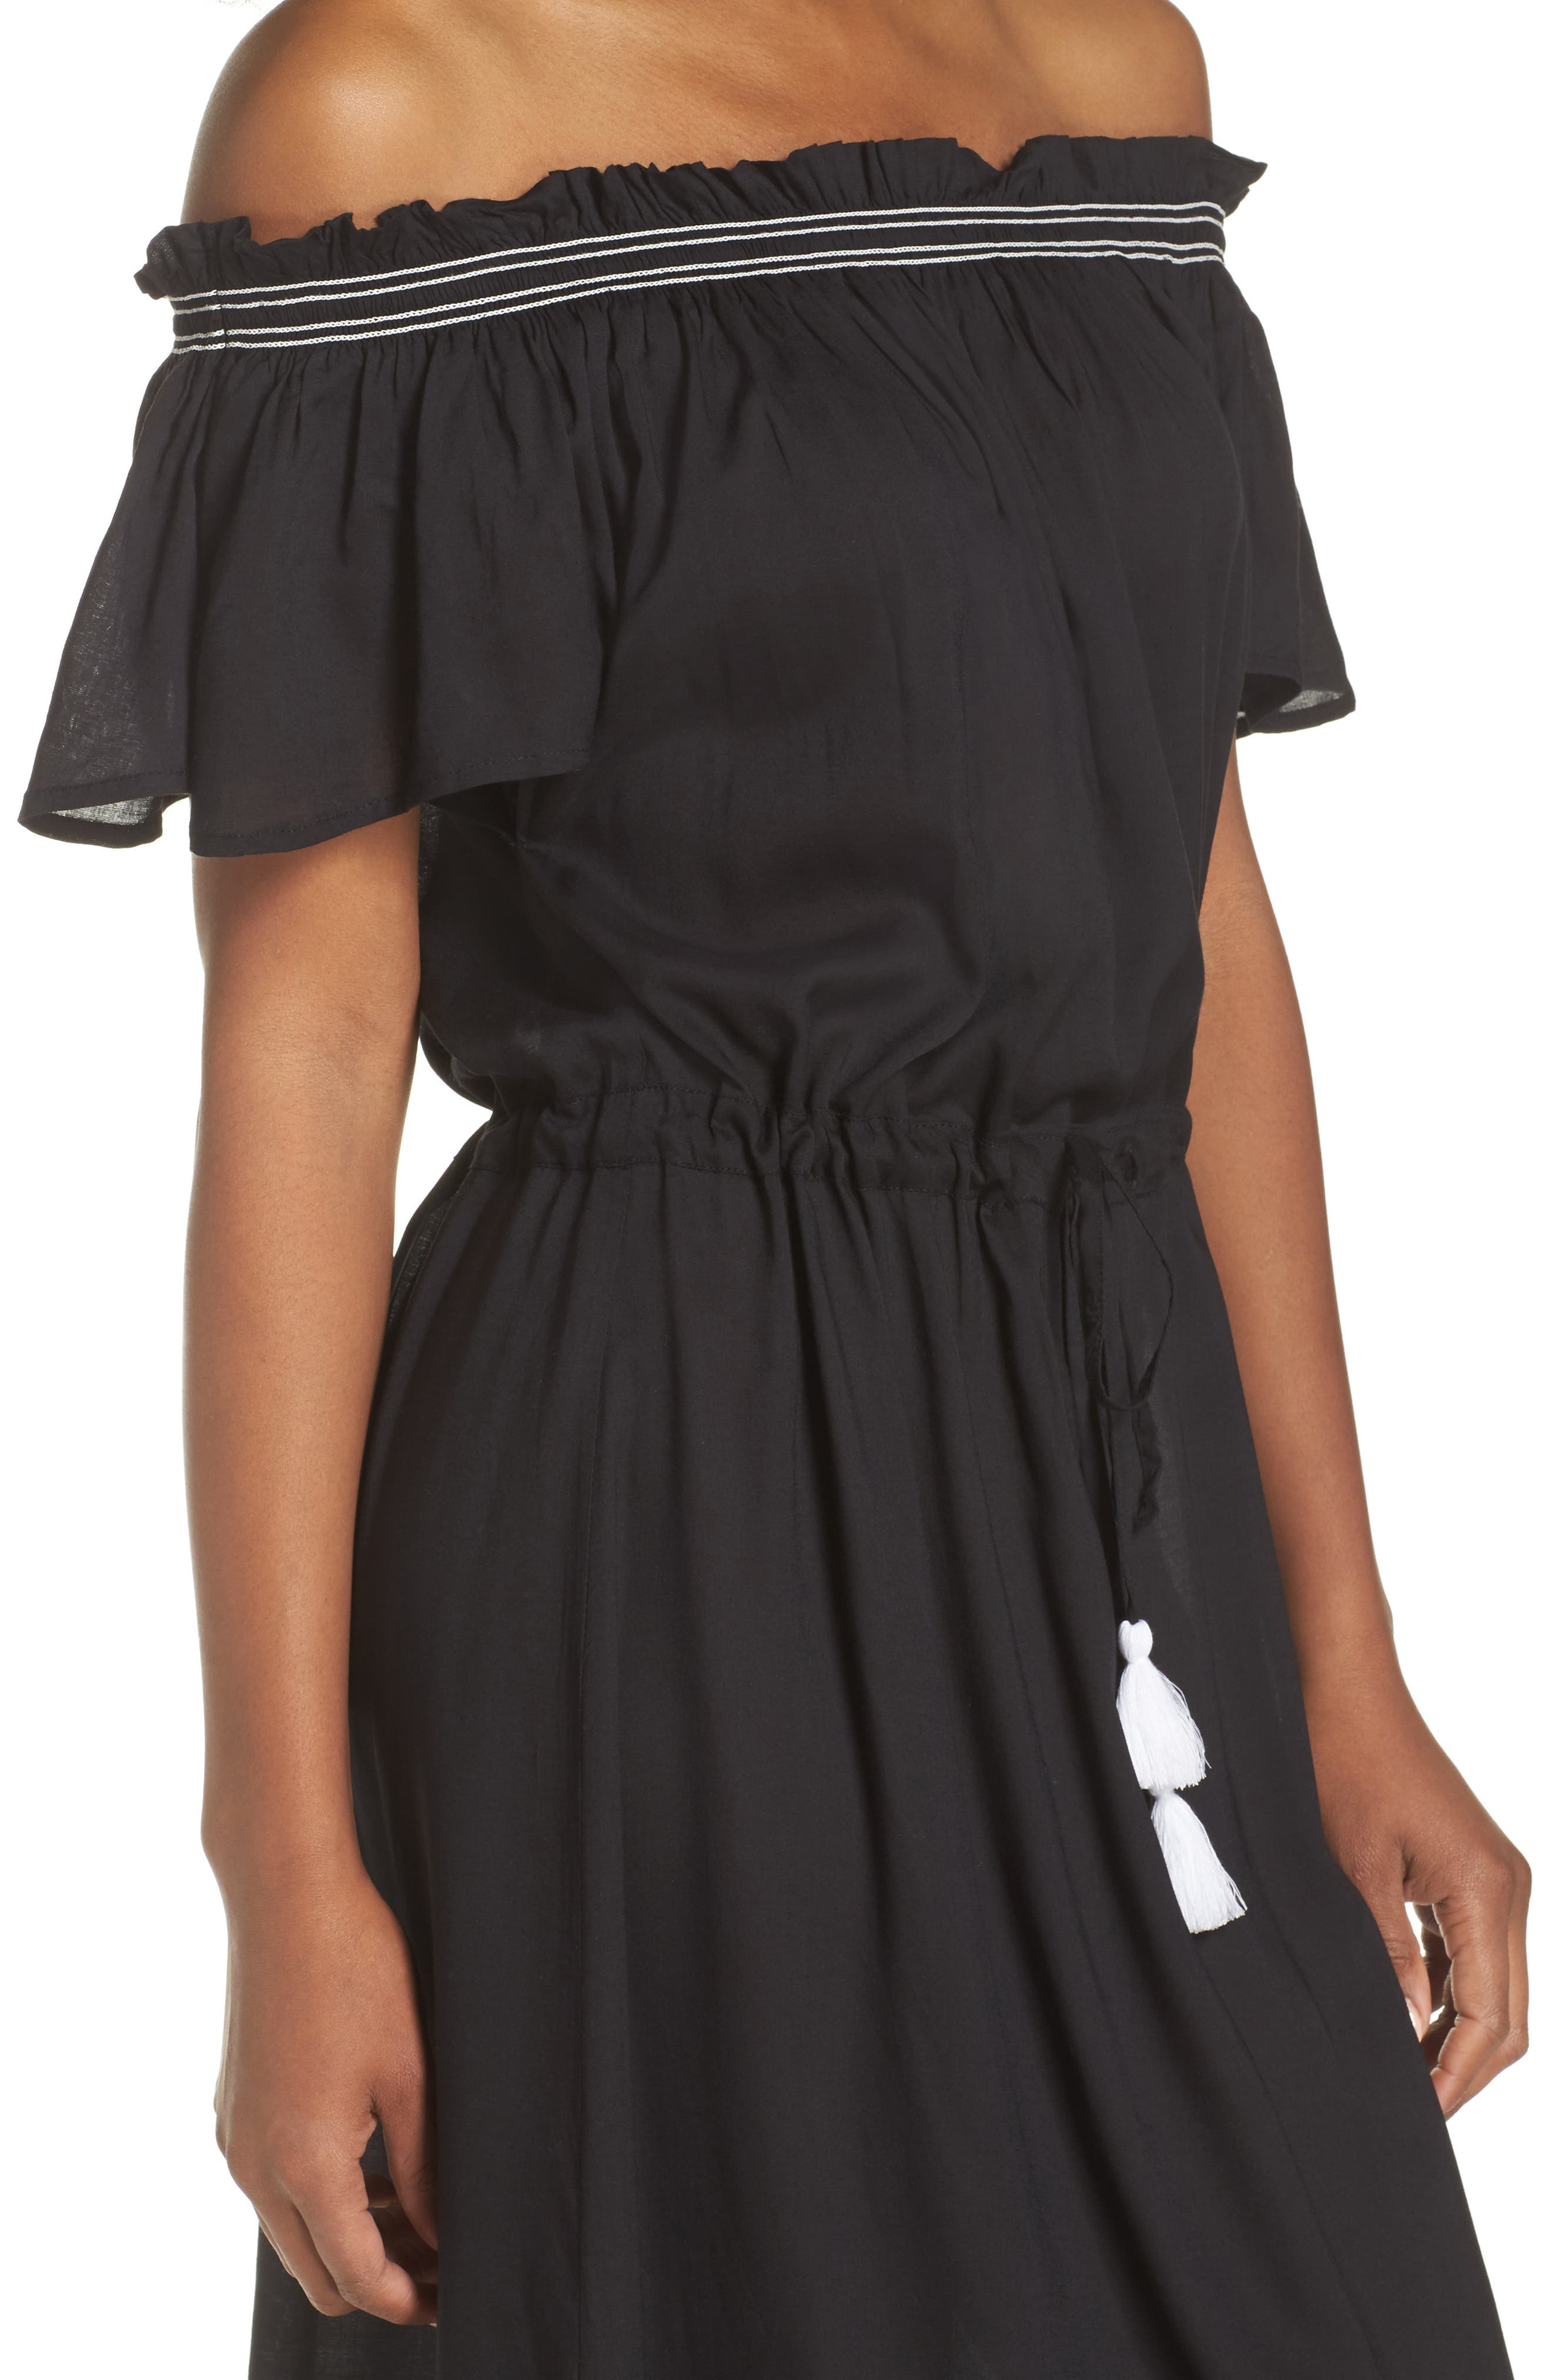 Off the Shoulder Cover-Up Dress,                             Alternate thumbnail 4, color,                             Black